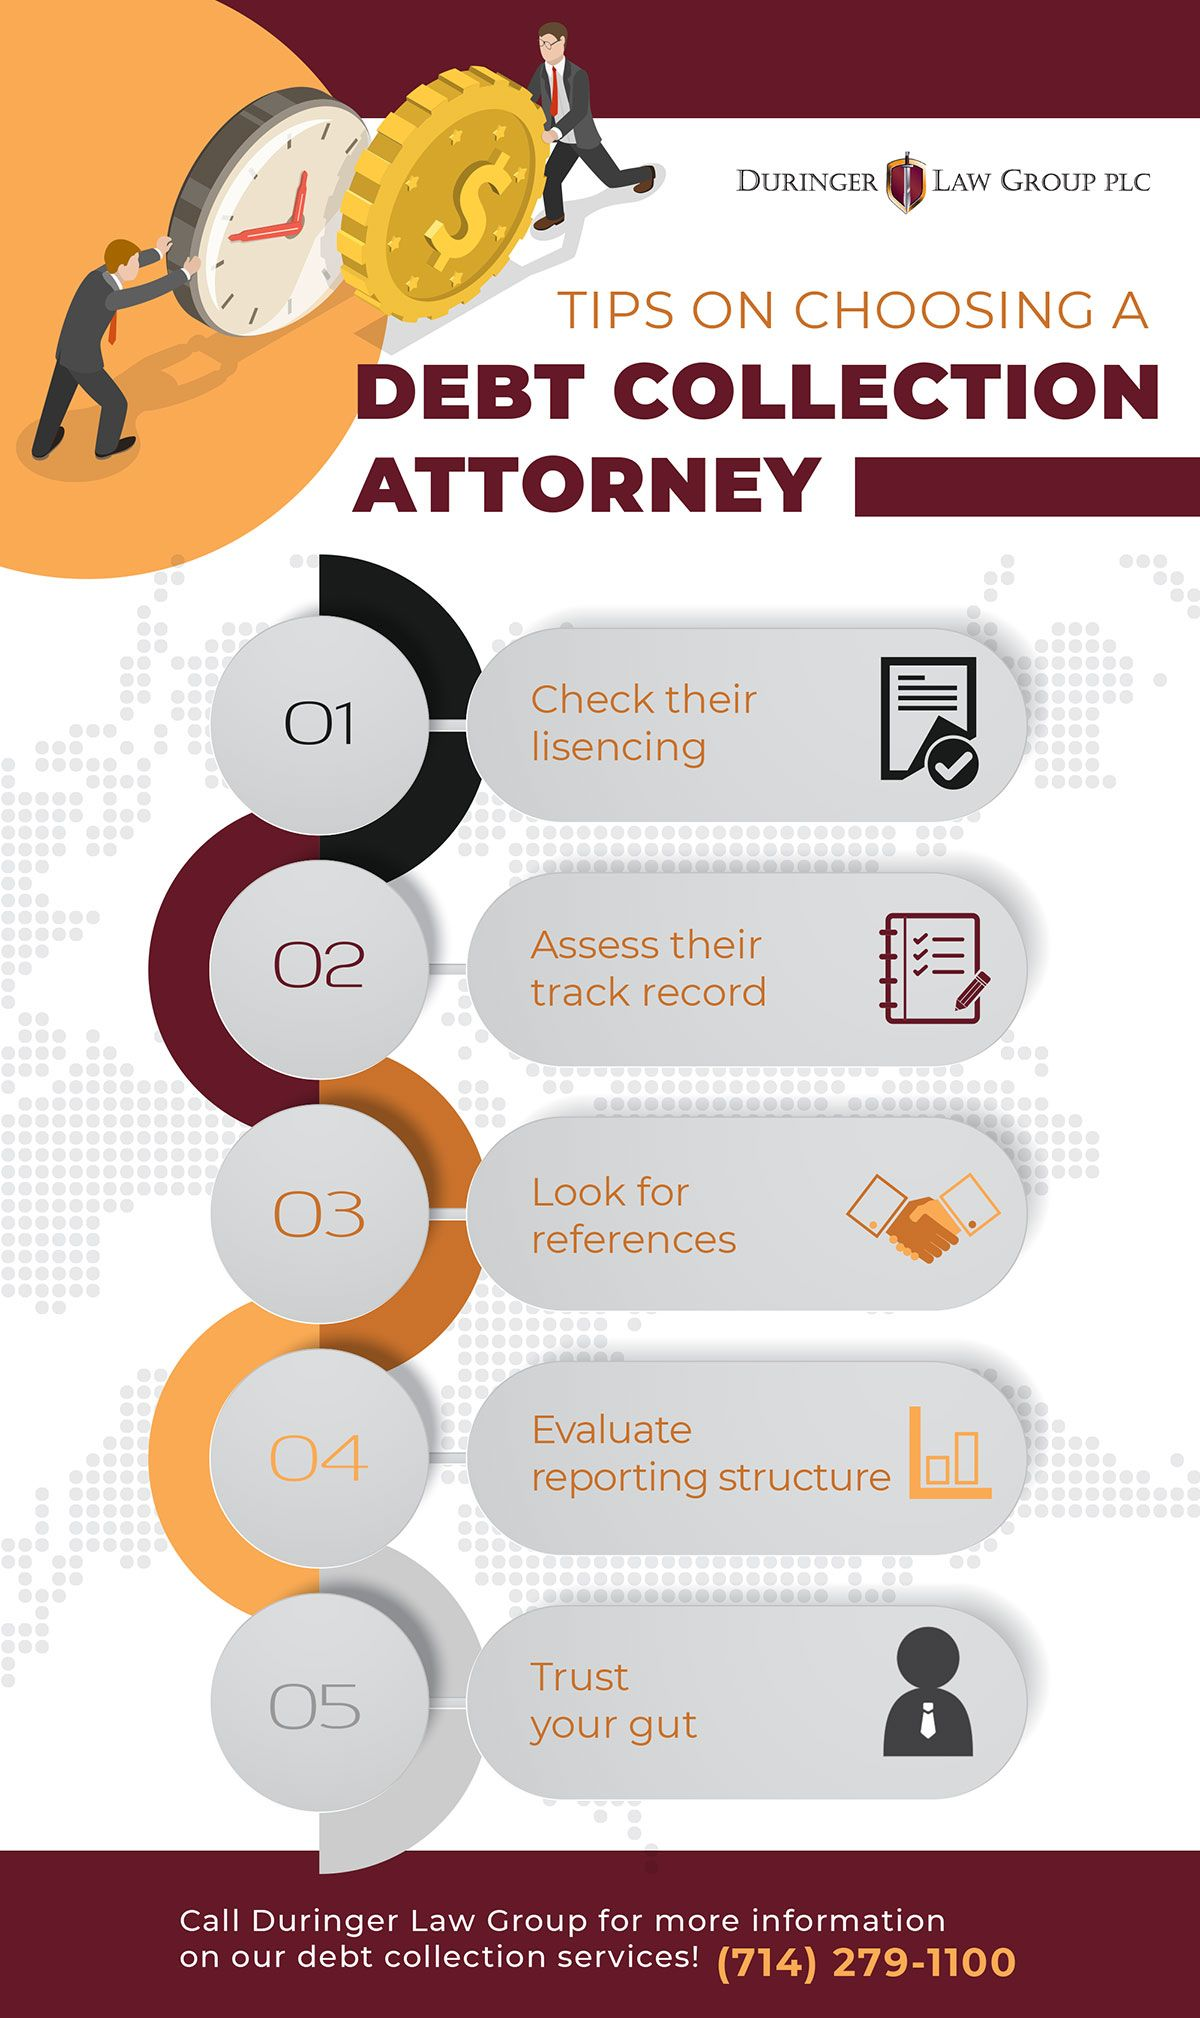 Tips-On-Choosing-a-Debt-Collection-Attorney3-60d203834c4ff.jpg